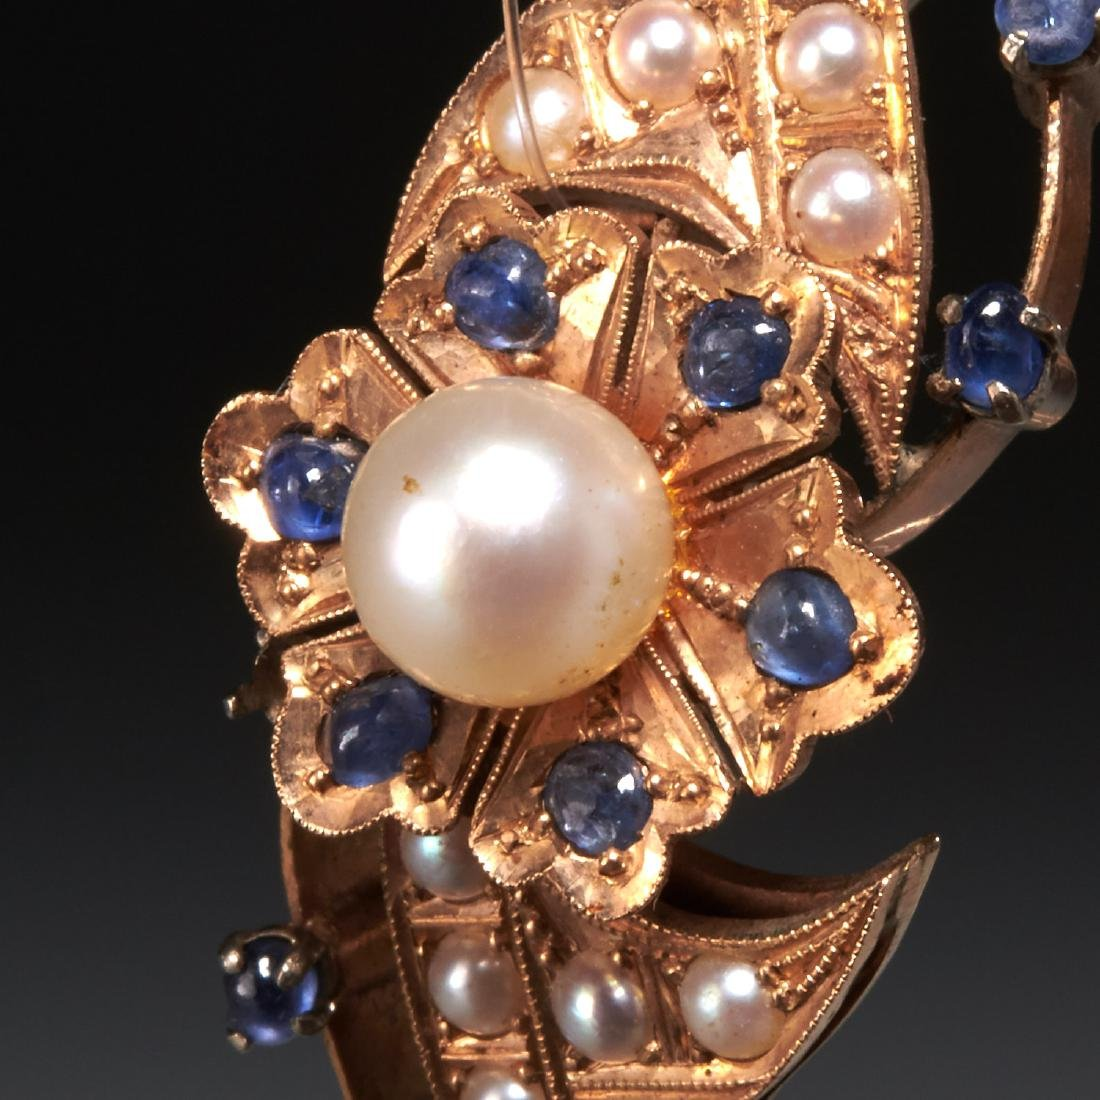 Victorian style 14k gold bracelet with pearls - 2